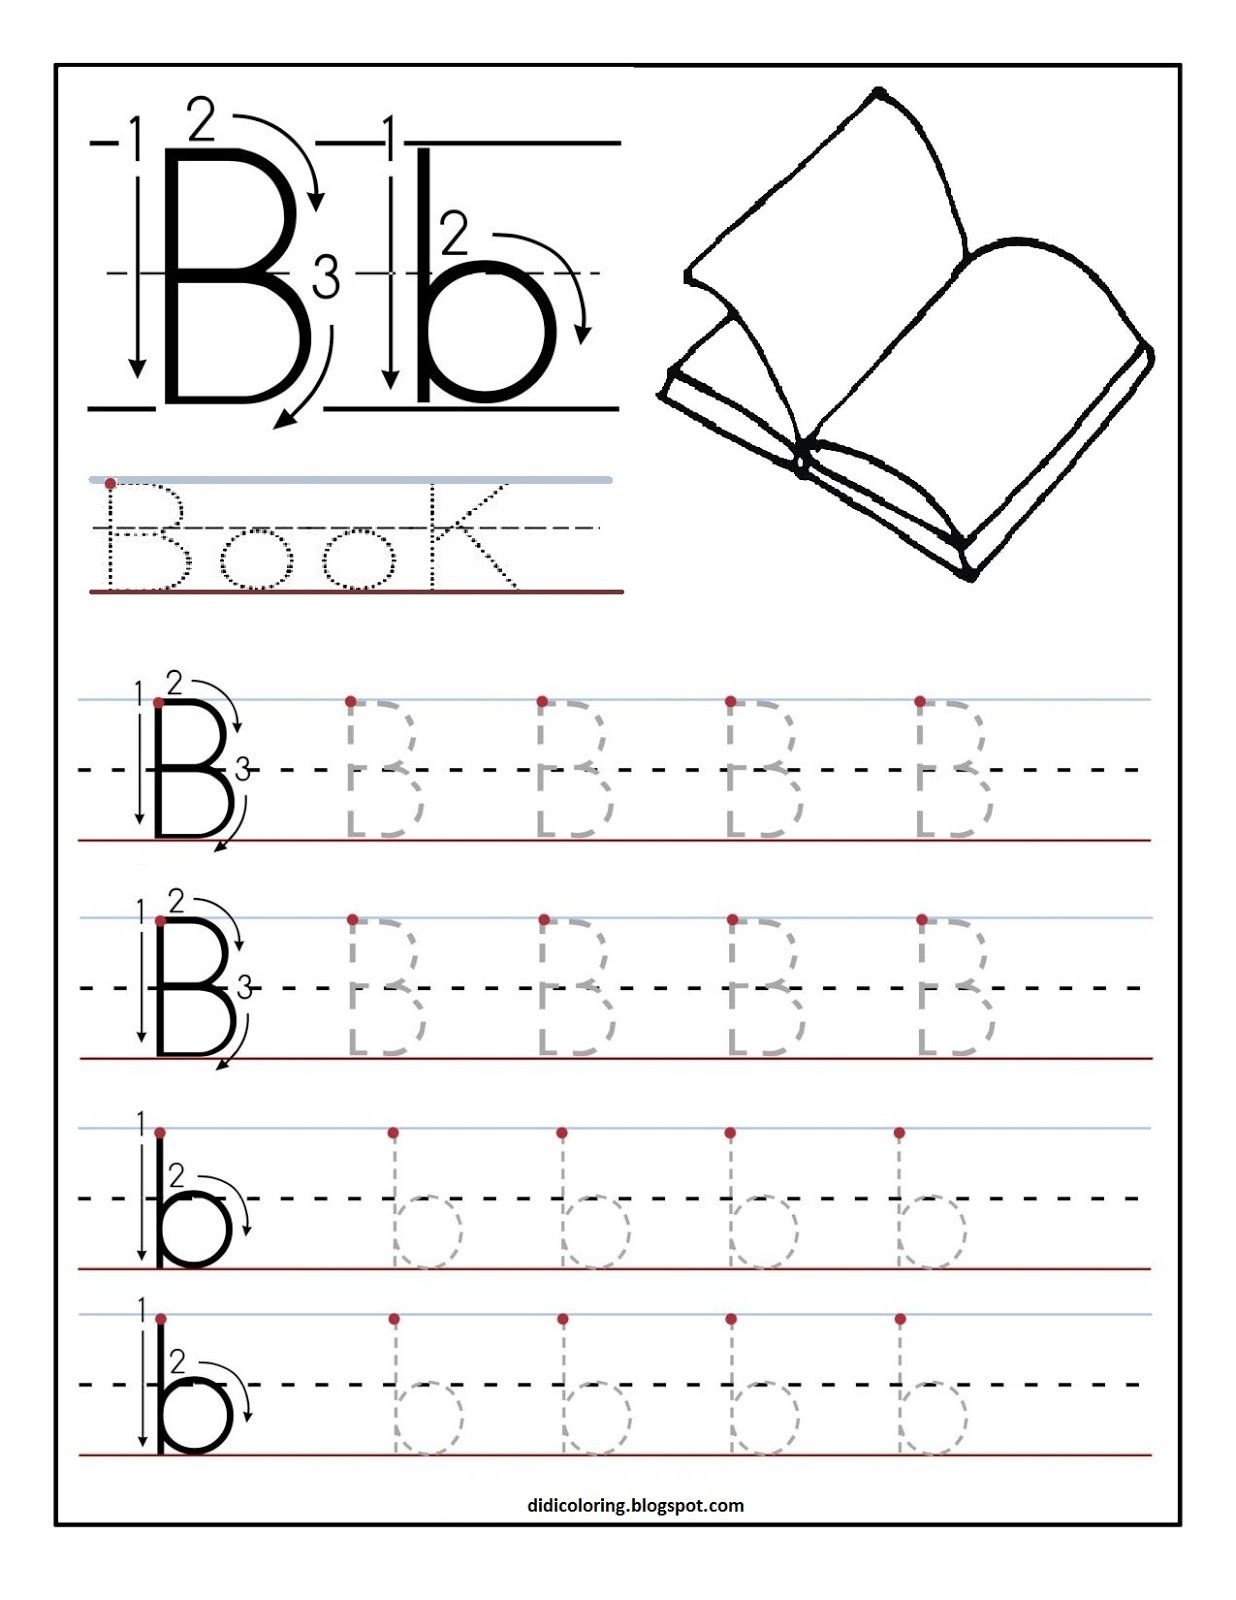 Free Printable Worksheet Letter B For Your Child To Learn And Write - Learning To Write Letters Free Printables